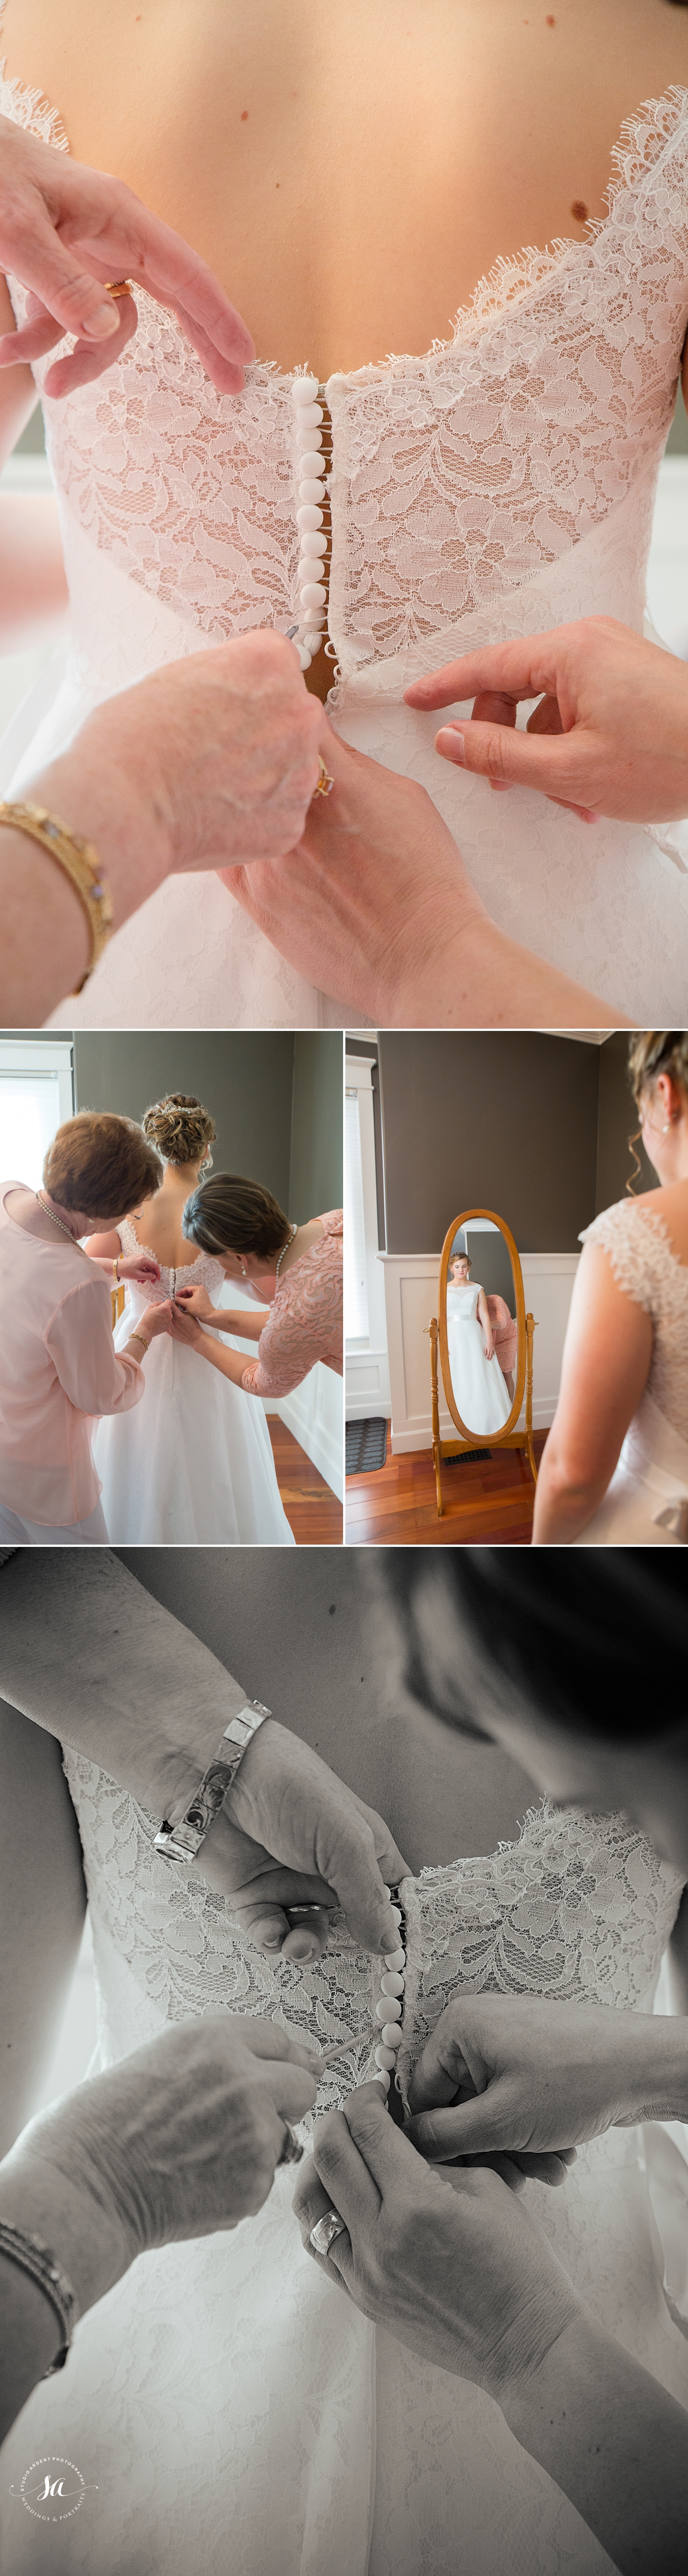 Love these detail shots of the dress buttoning. Great job Tomasina!